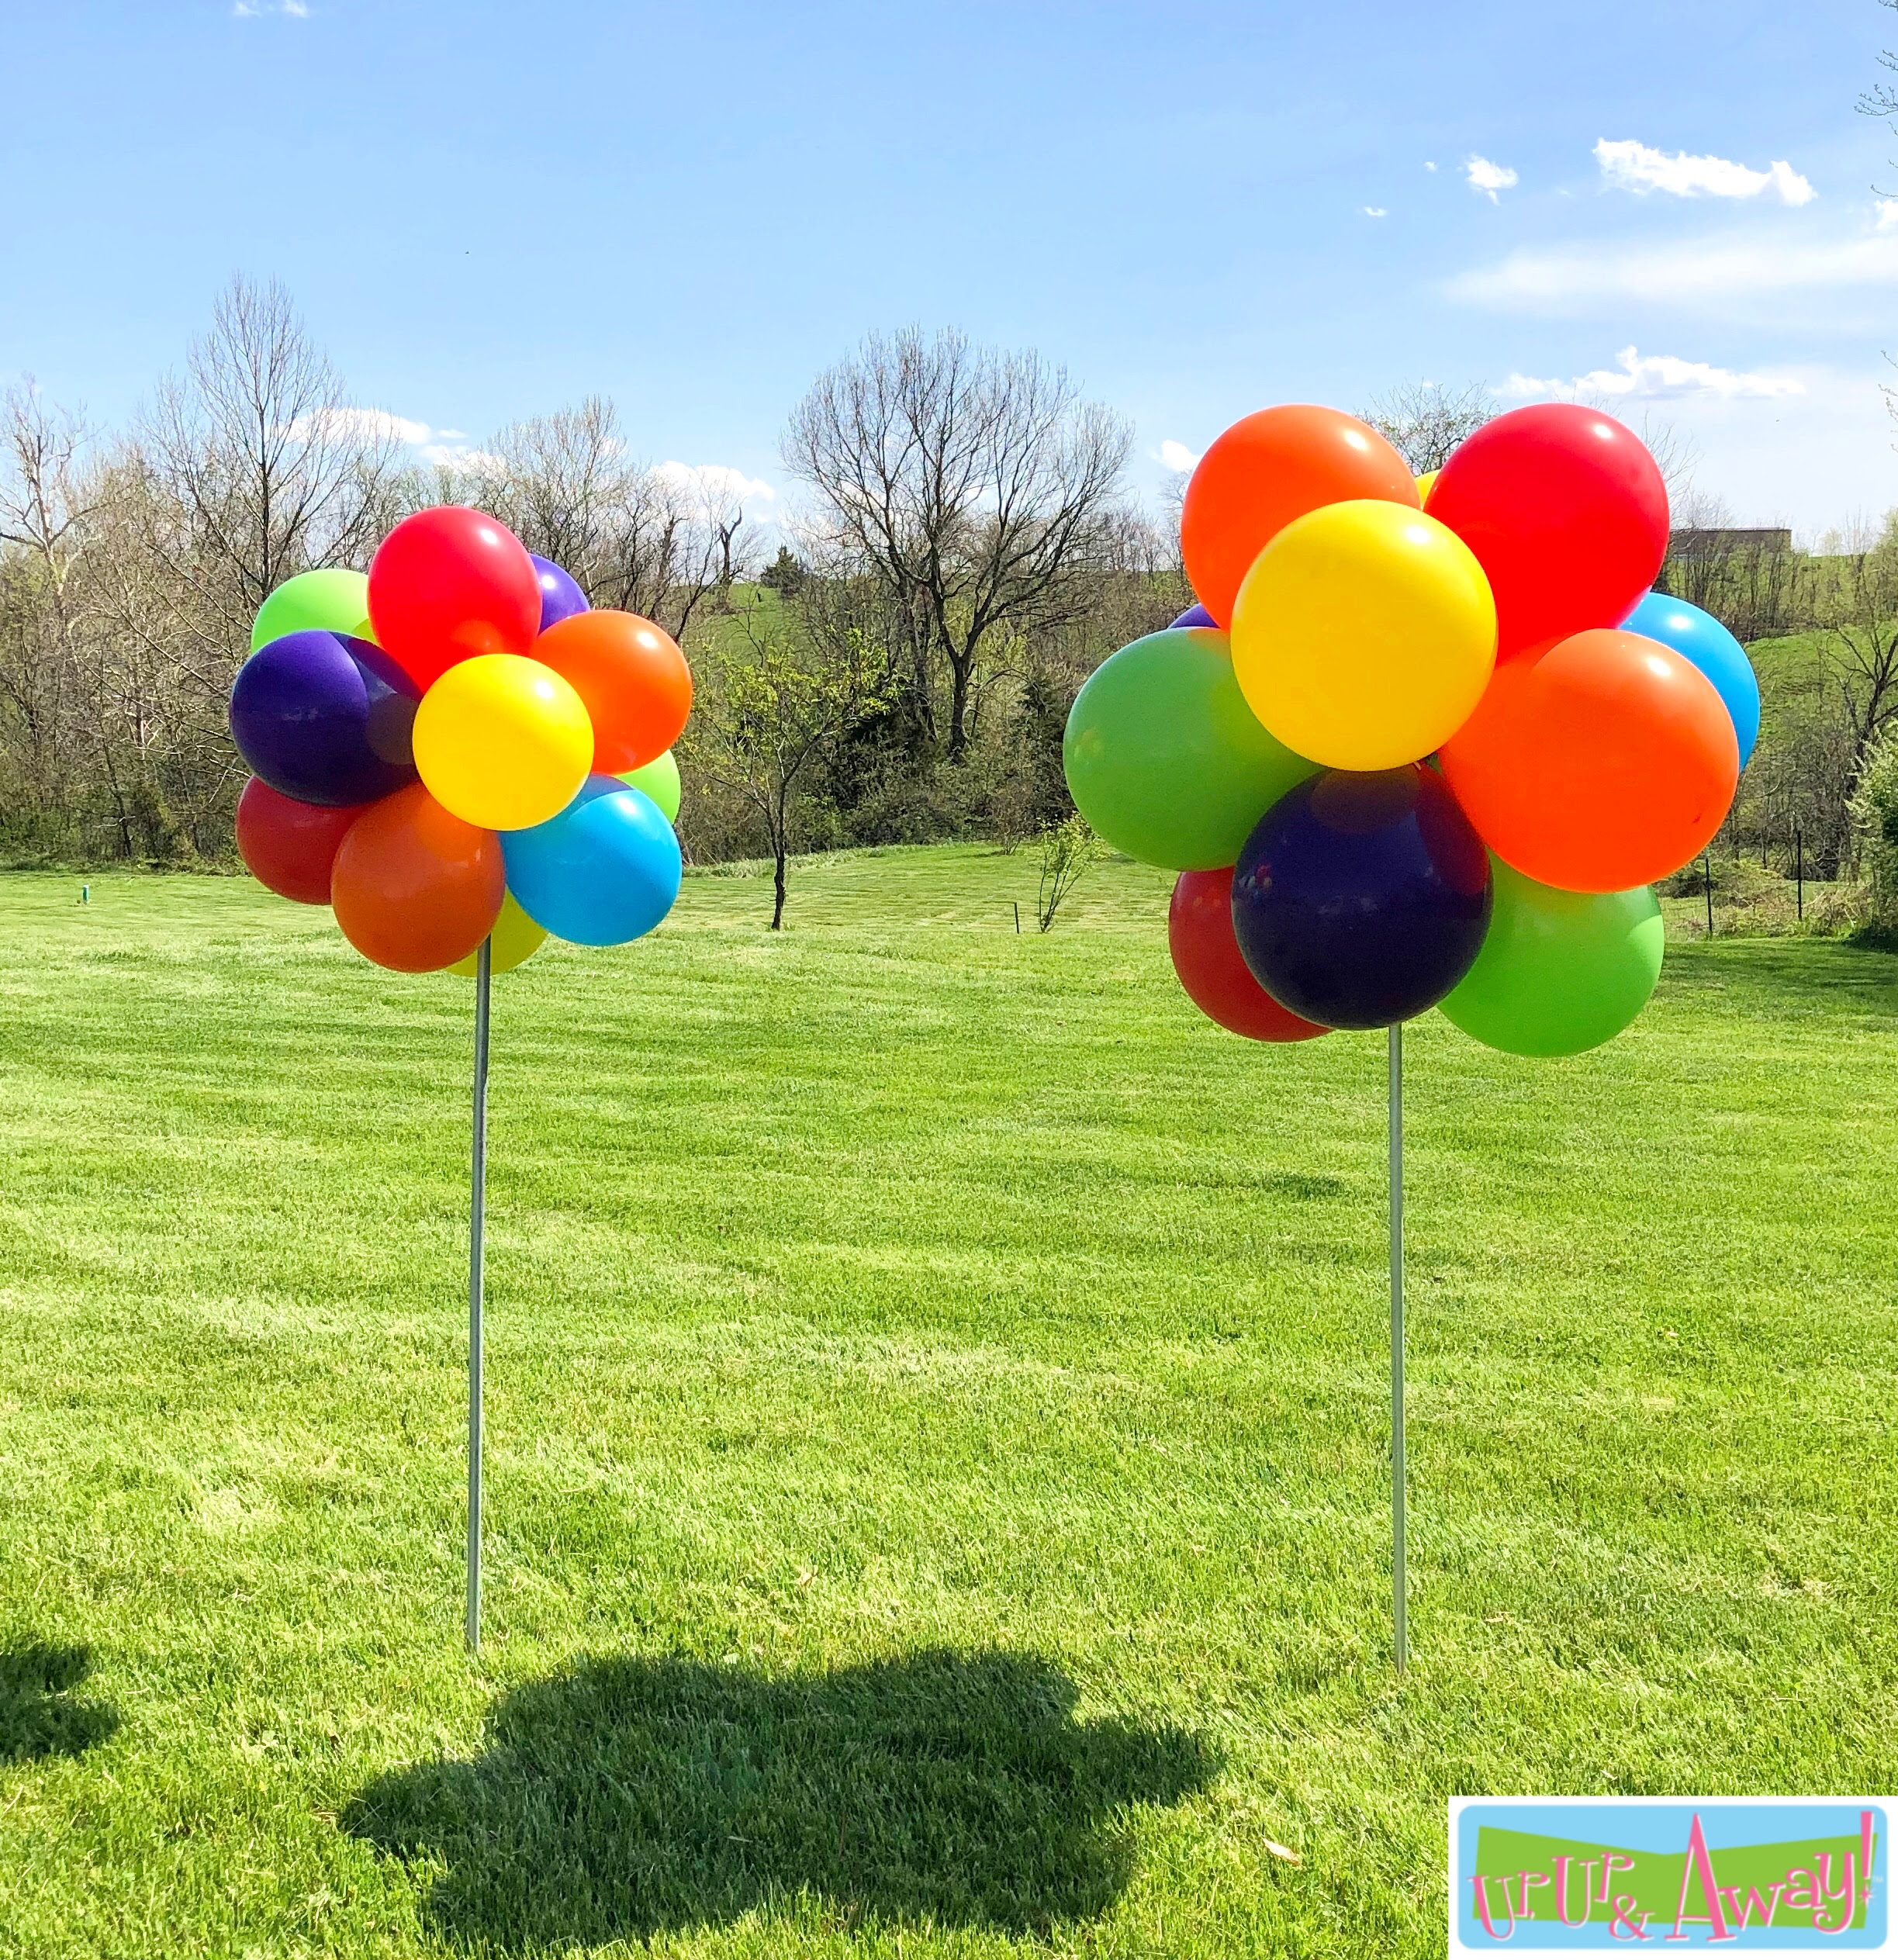 Balloon Topiaries | Up, Up & Away!